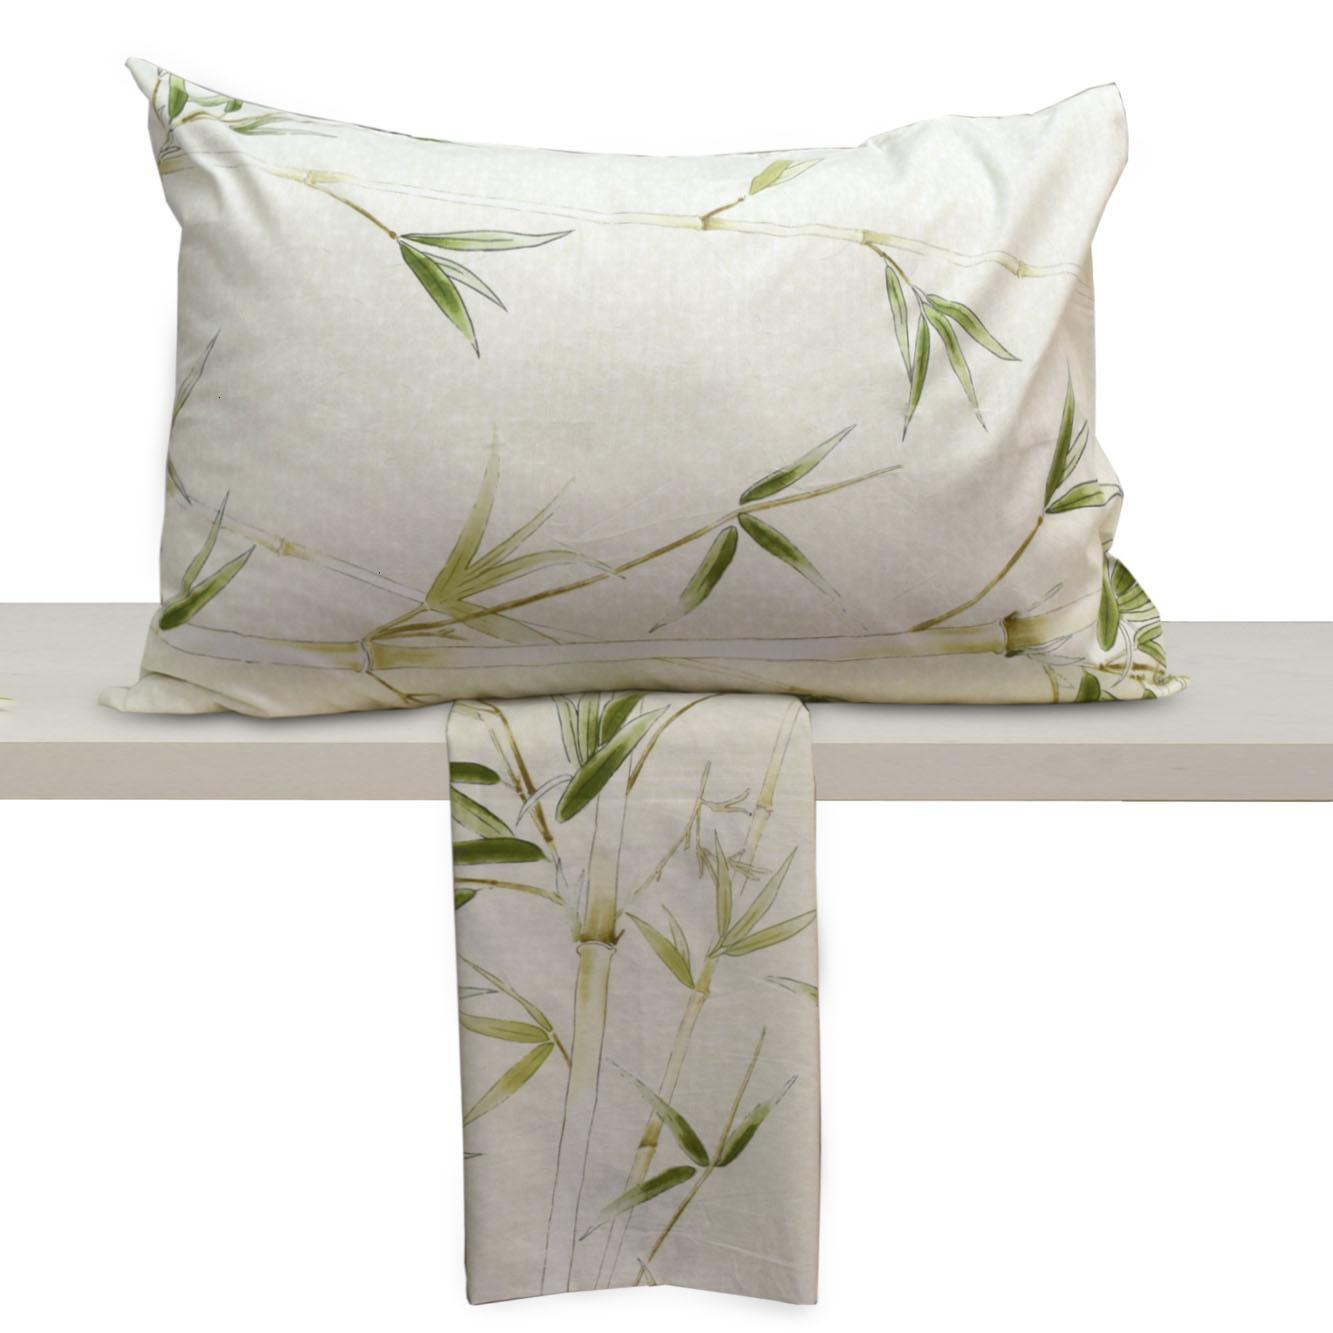 Essina 100% Cotton Assorted Cotton Pillow Case 1 piece (PILLOW NOT INCLUDED)